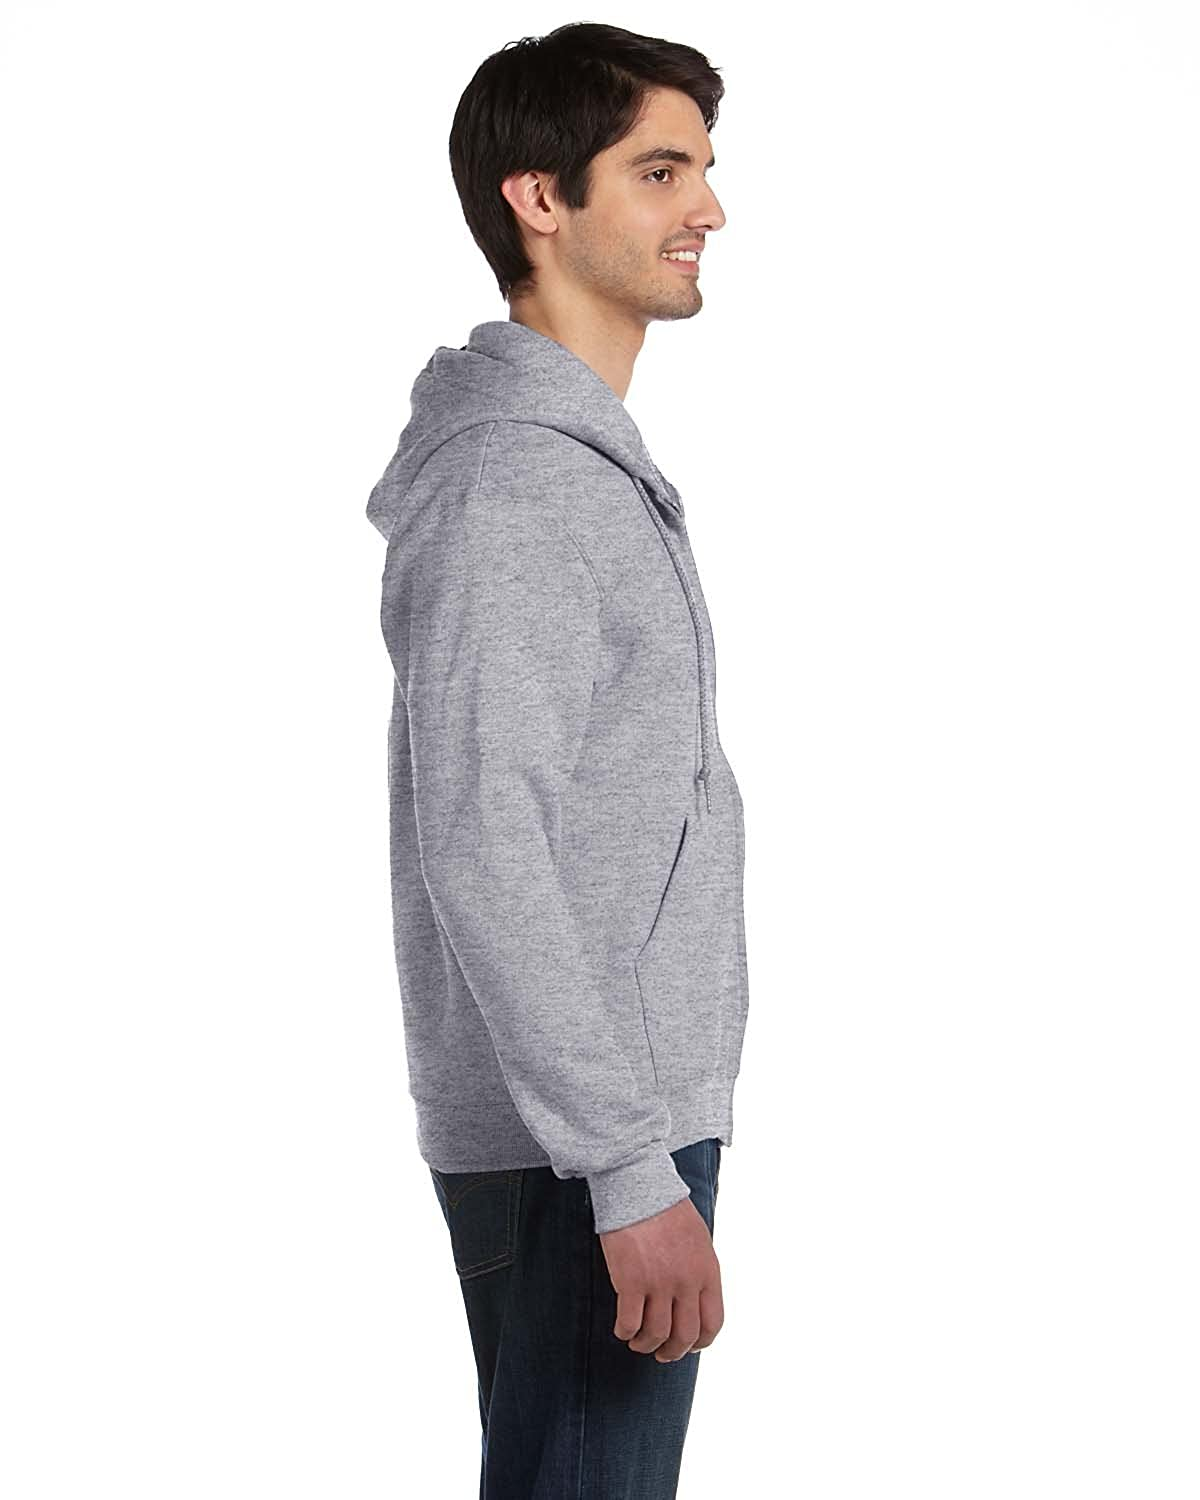 Supercotton 70//30 Full-Zip Hood ATHLETIC HEATHER Fruit of the Loom 12 oz XL